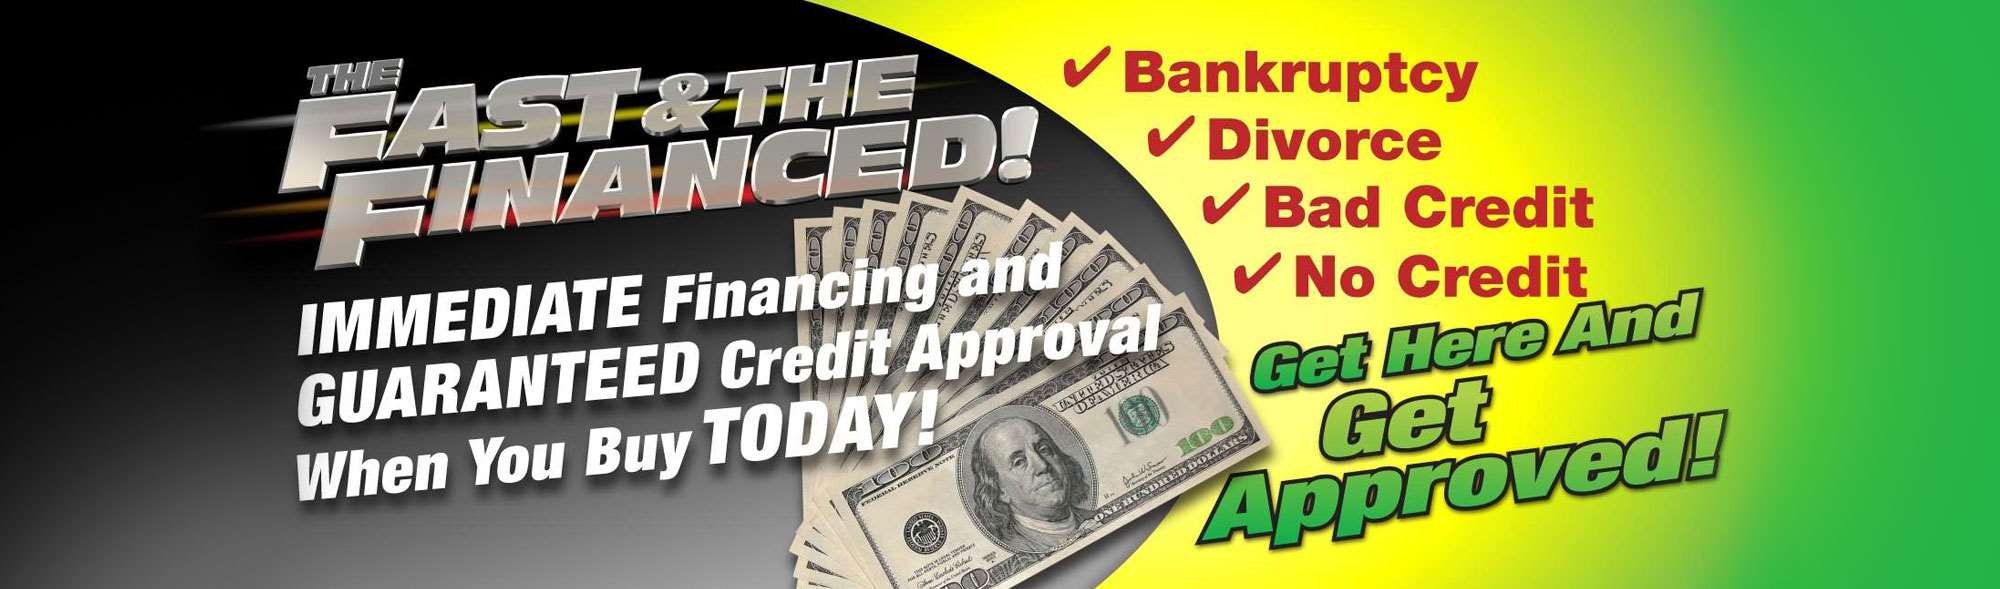 Credit Cars - Car loans